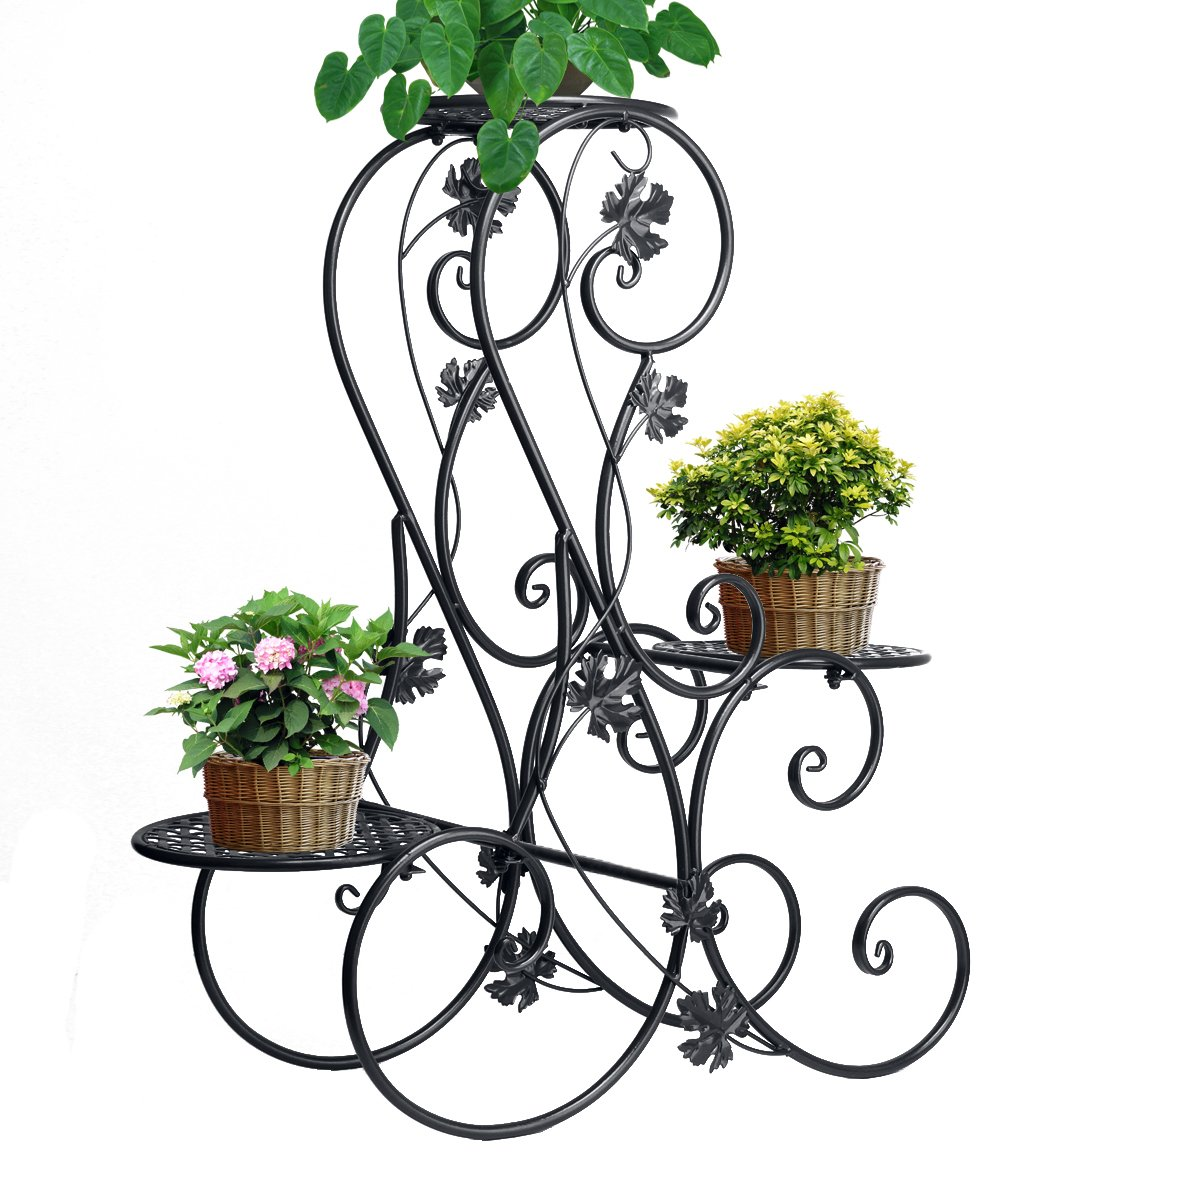 Dazone® 3-Tiered Scroll Decorative Metal Garden Patio Standing Plant Flower Pot Rack Display Shelf Holds 3-Flower Pot (Black) by DAZONE (Image #7)